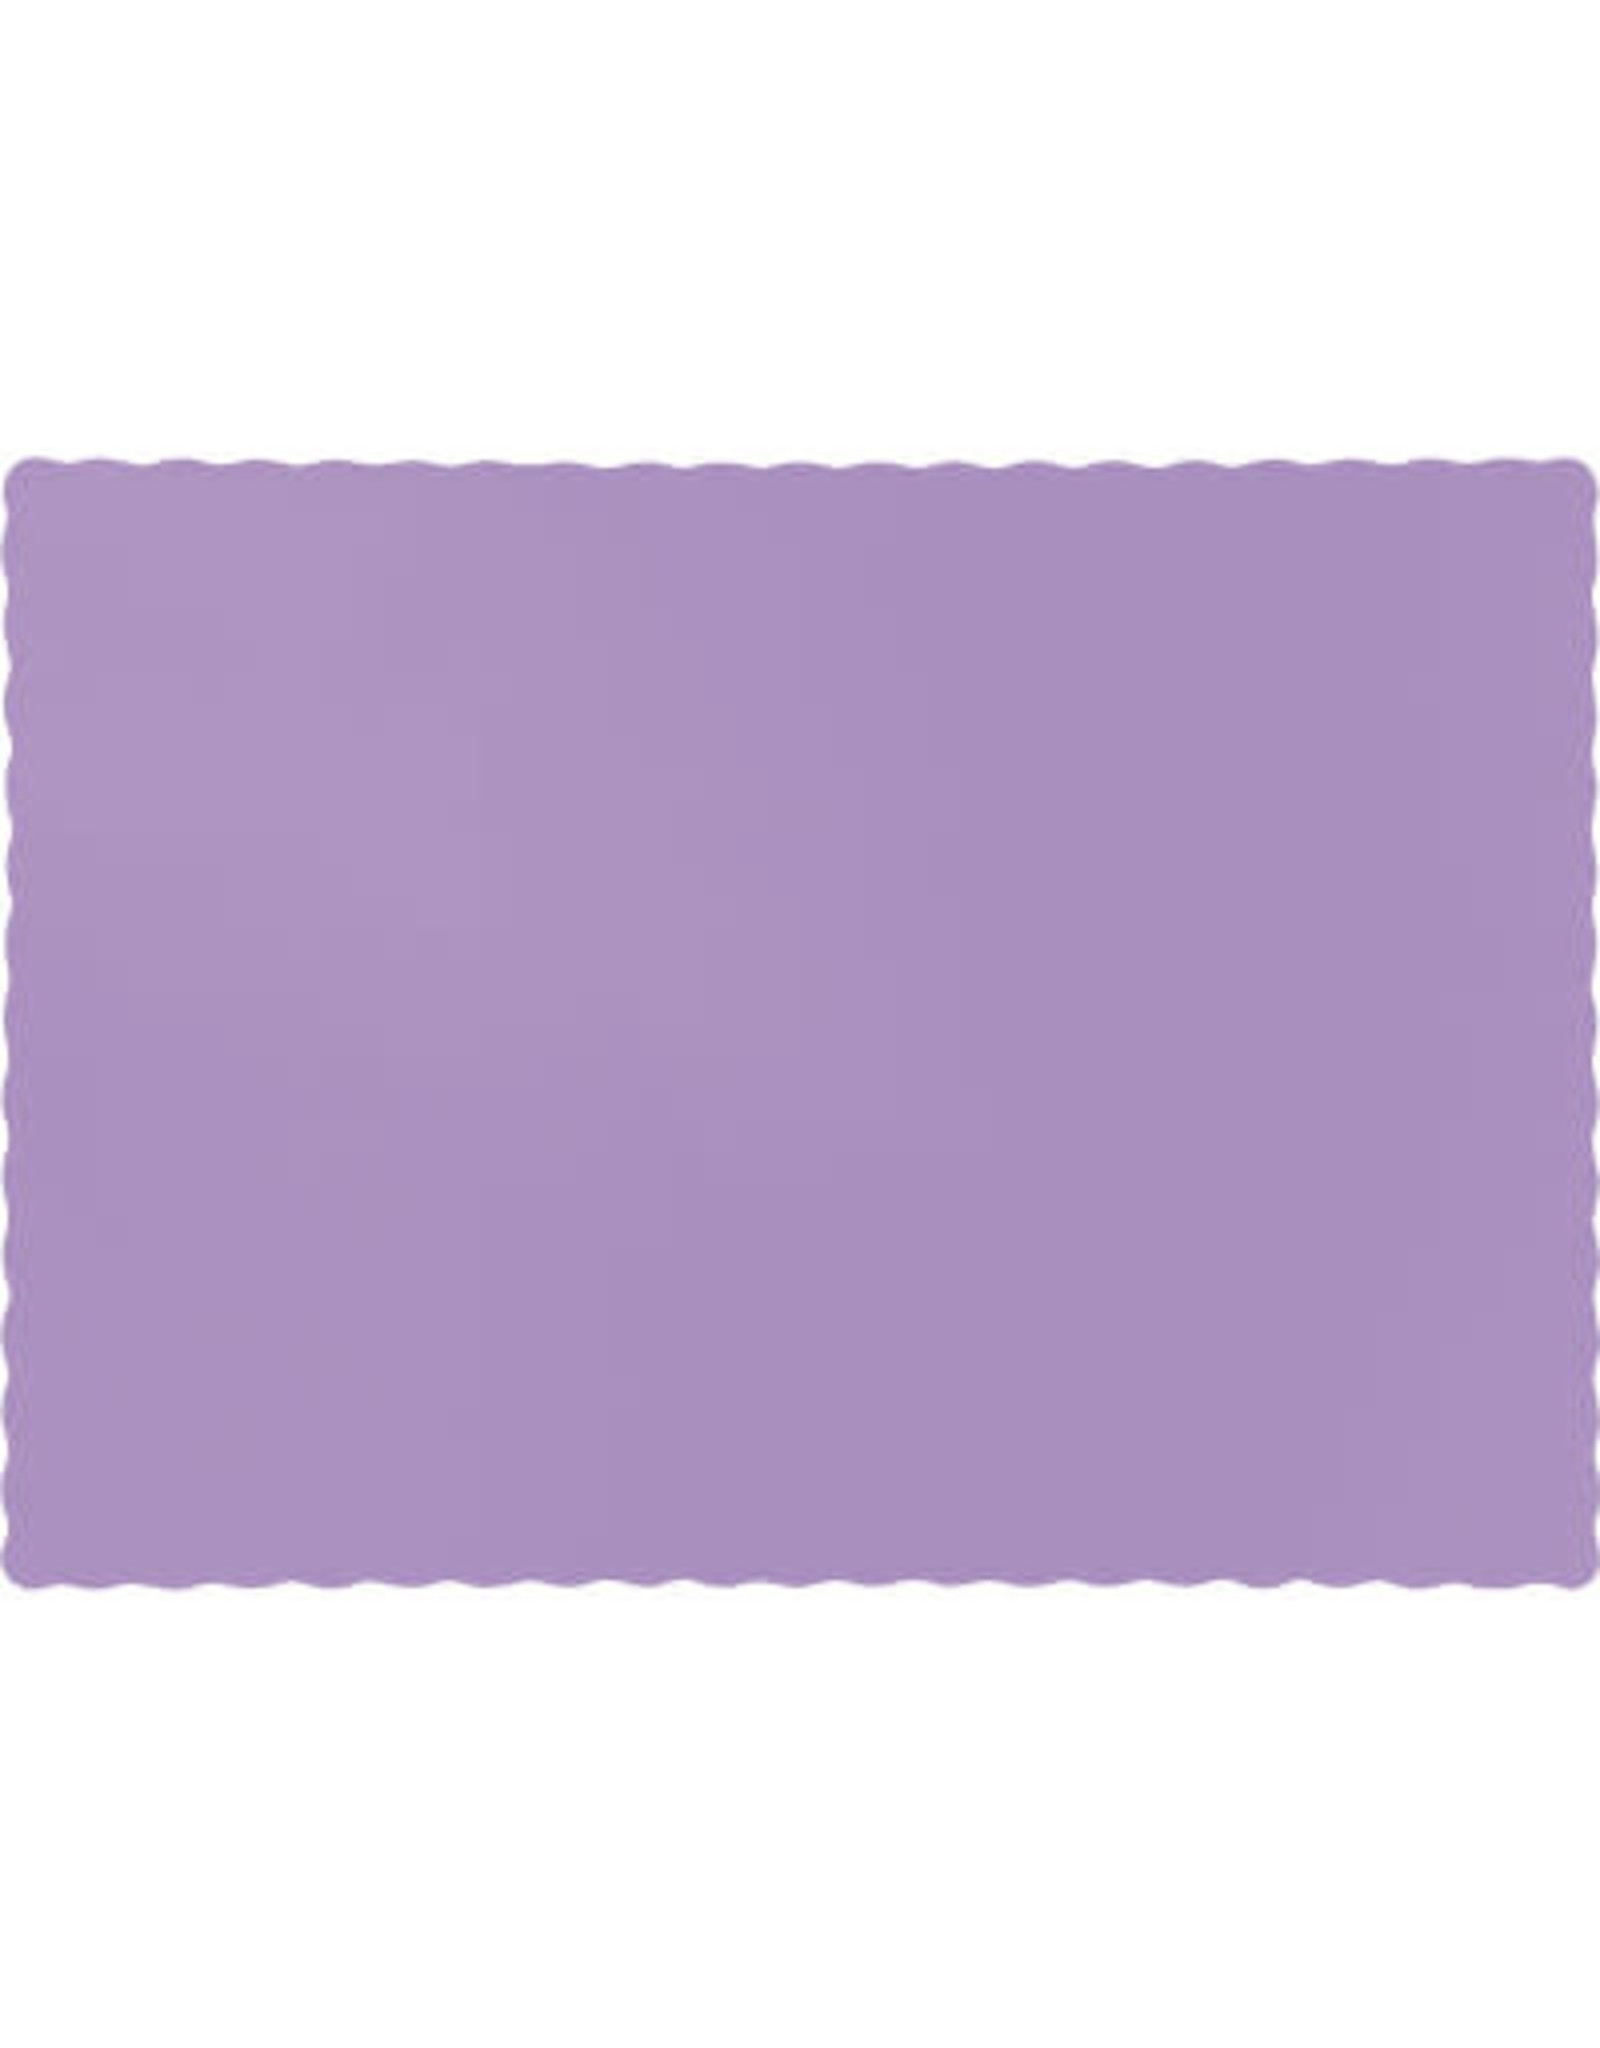 Touch of Color LUSCIOUS LAVENDER PURPLE PLACEMATS